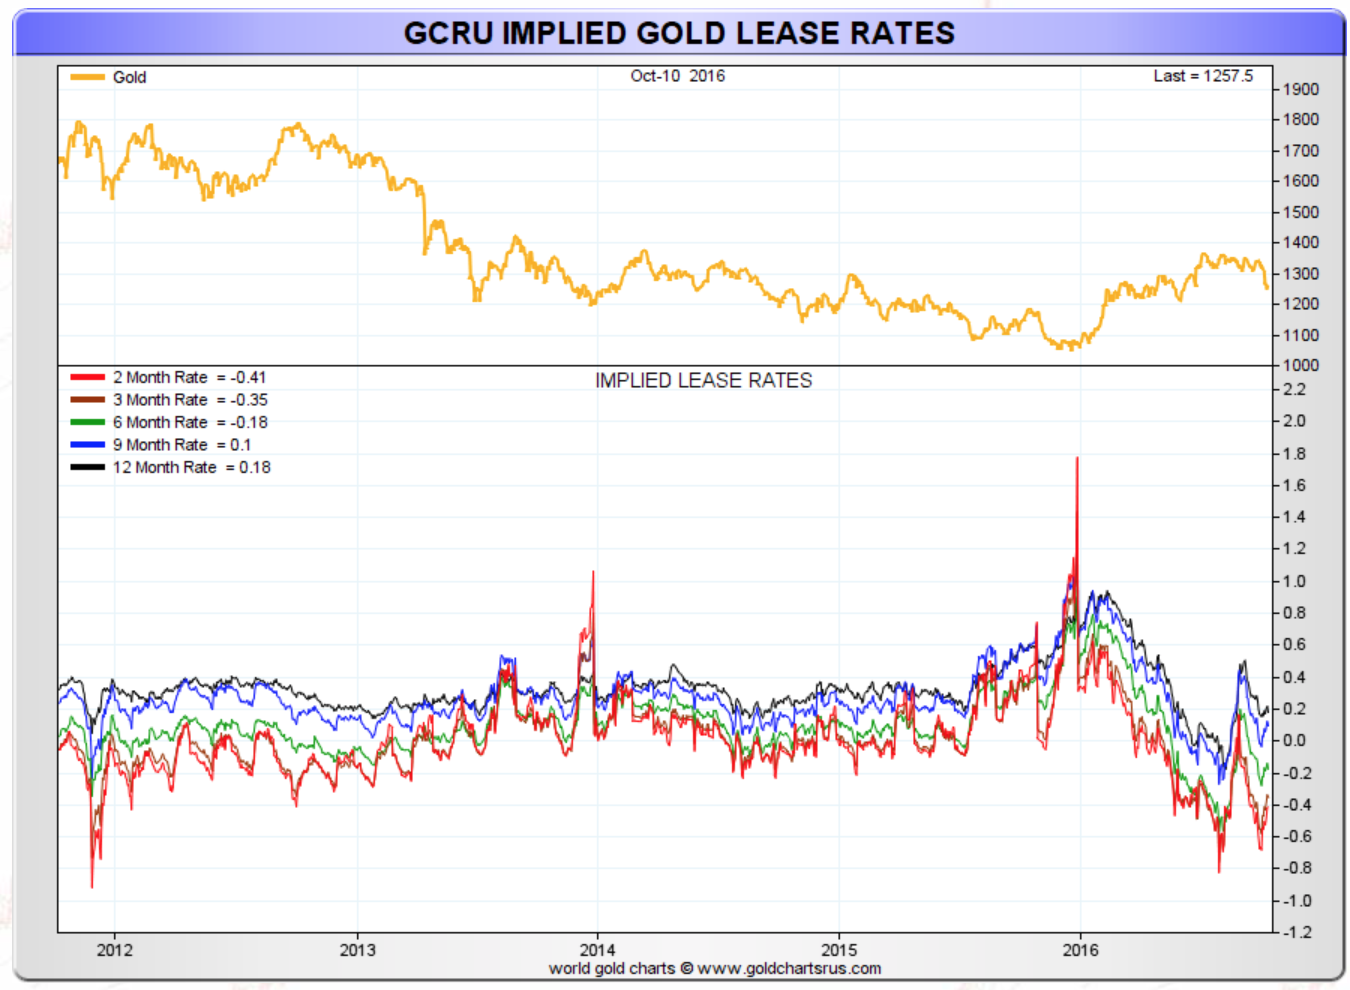 GCRU Implied Gold Lease Rates